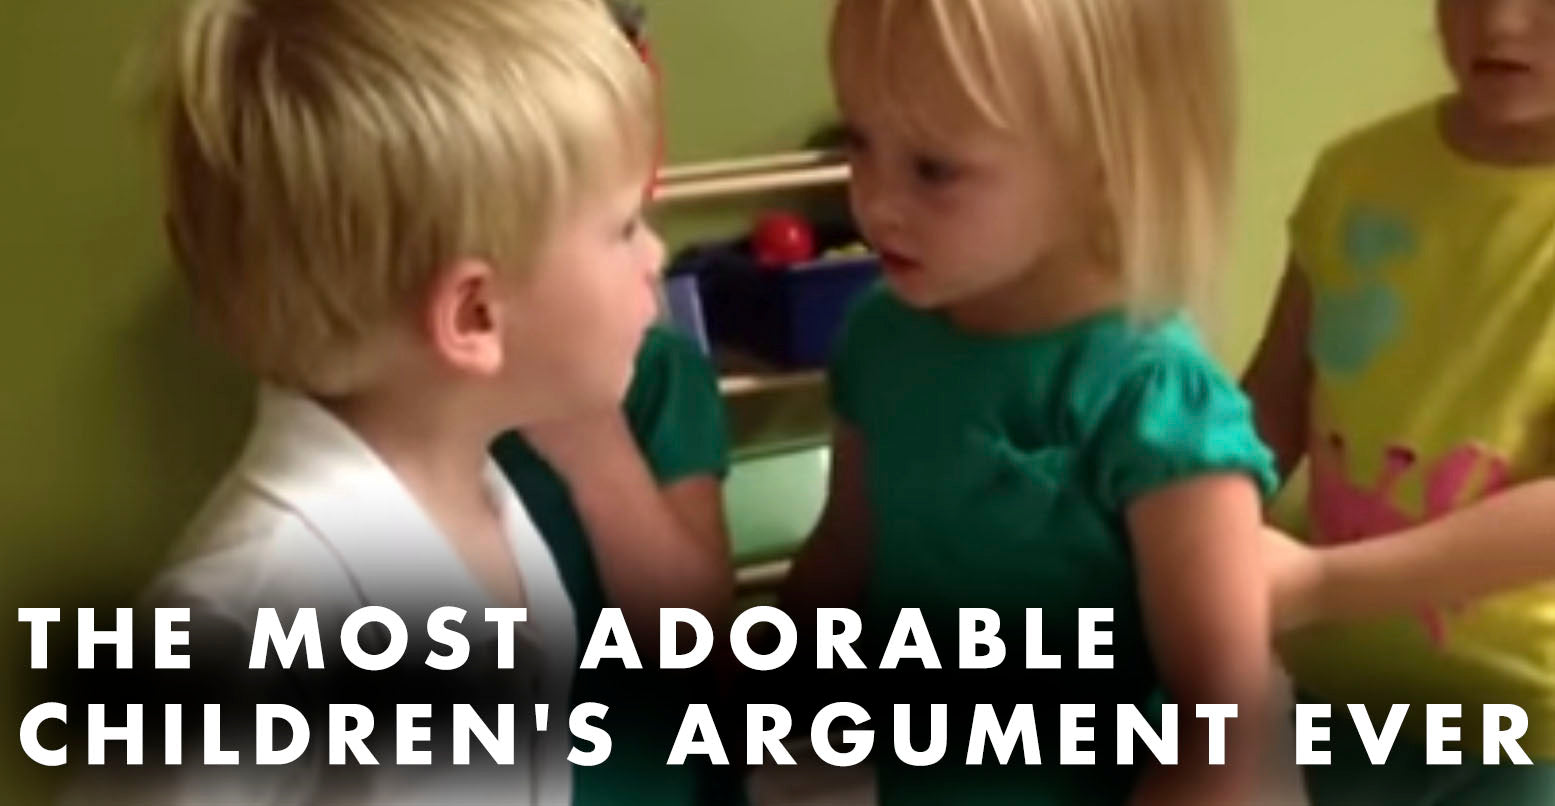 VIDEO: This Is The Most Adorable Children's Argument Ever